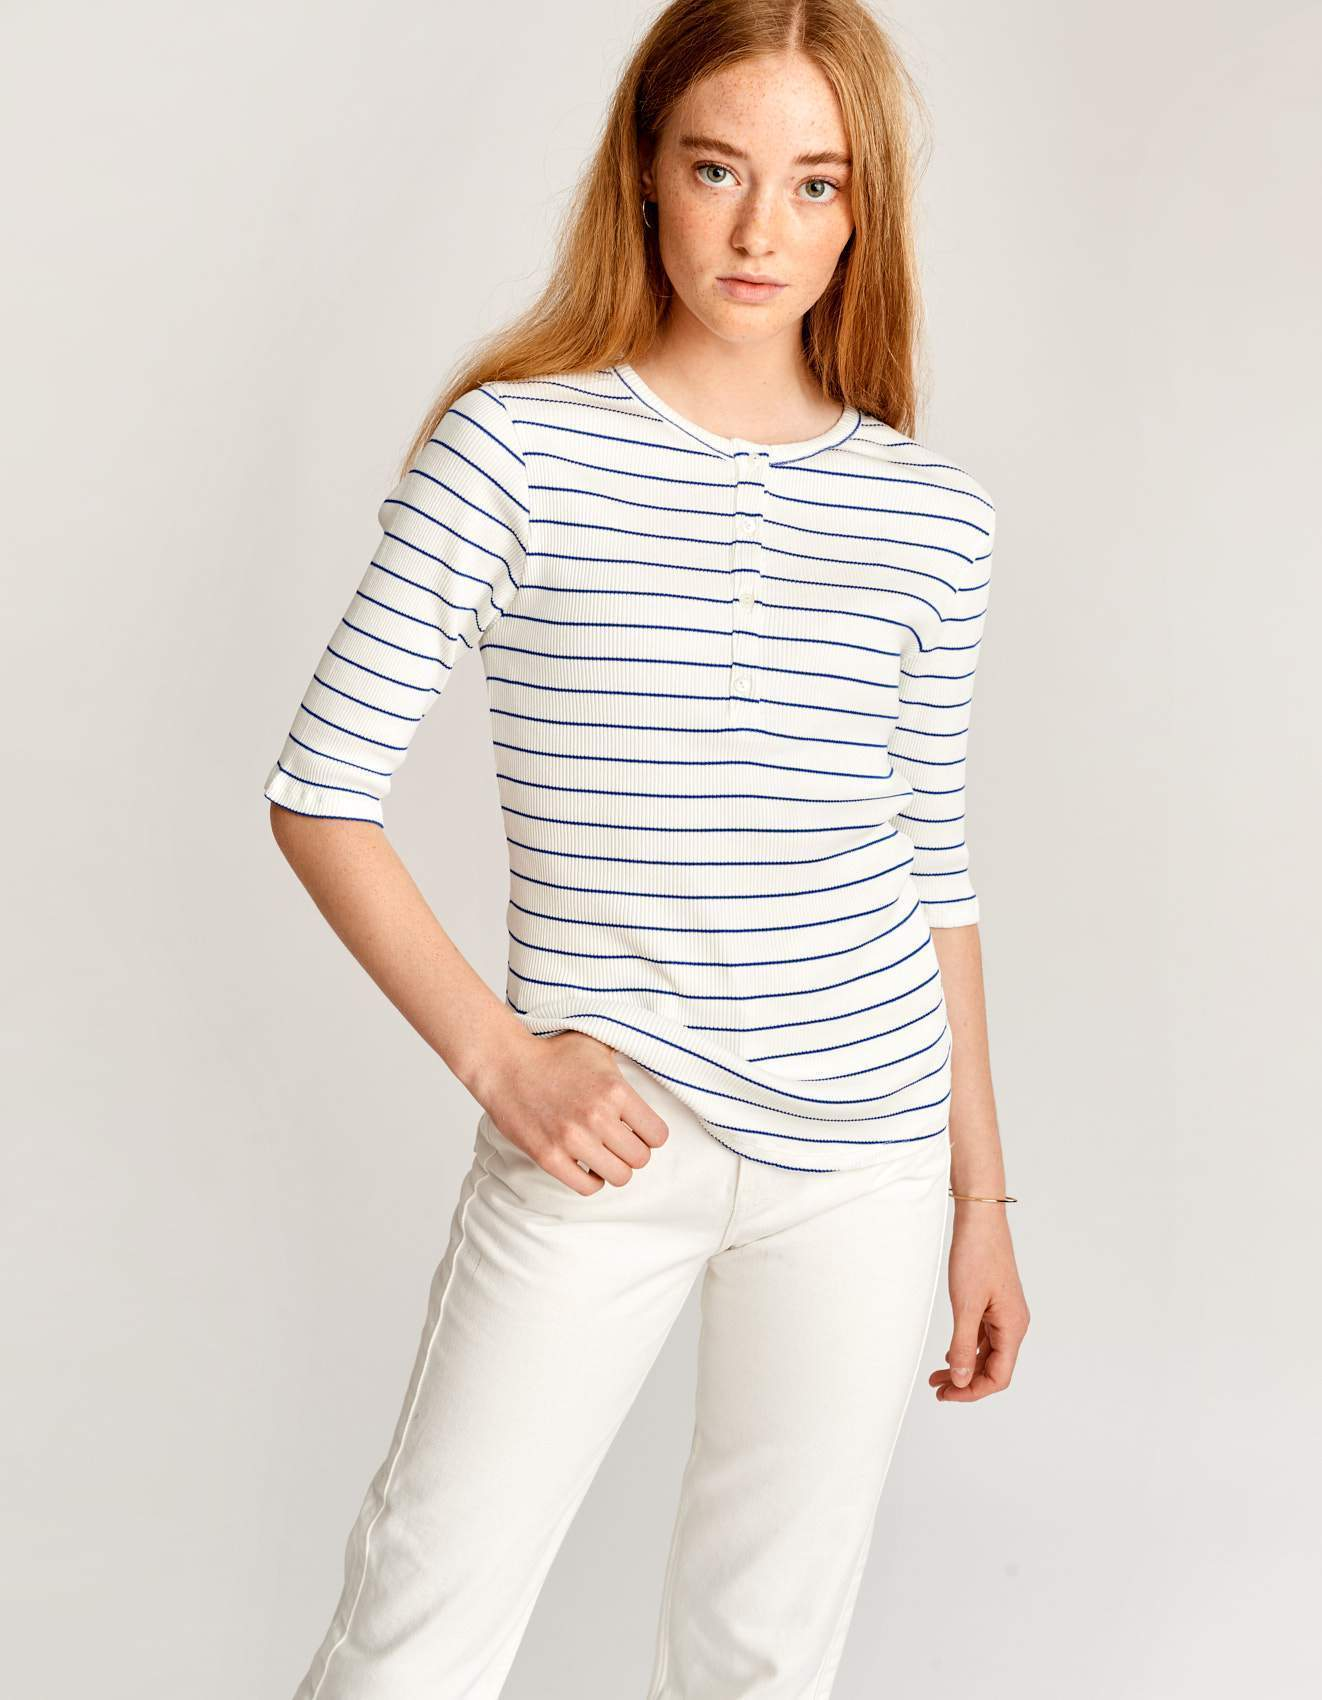 Bellerose slim fit cotton t-shirt for women